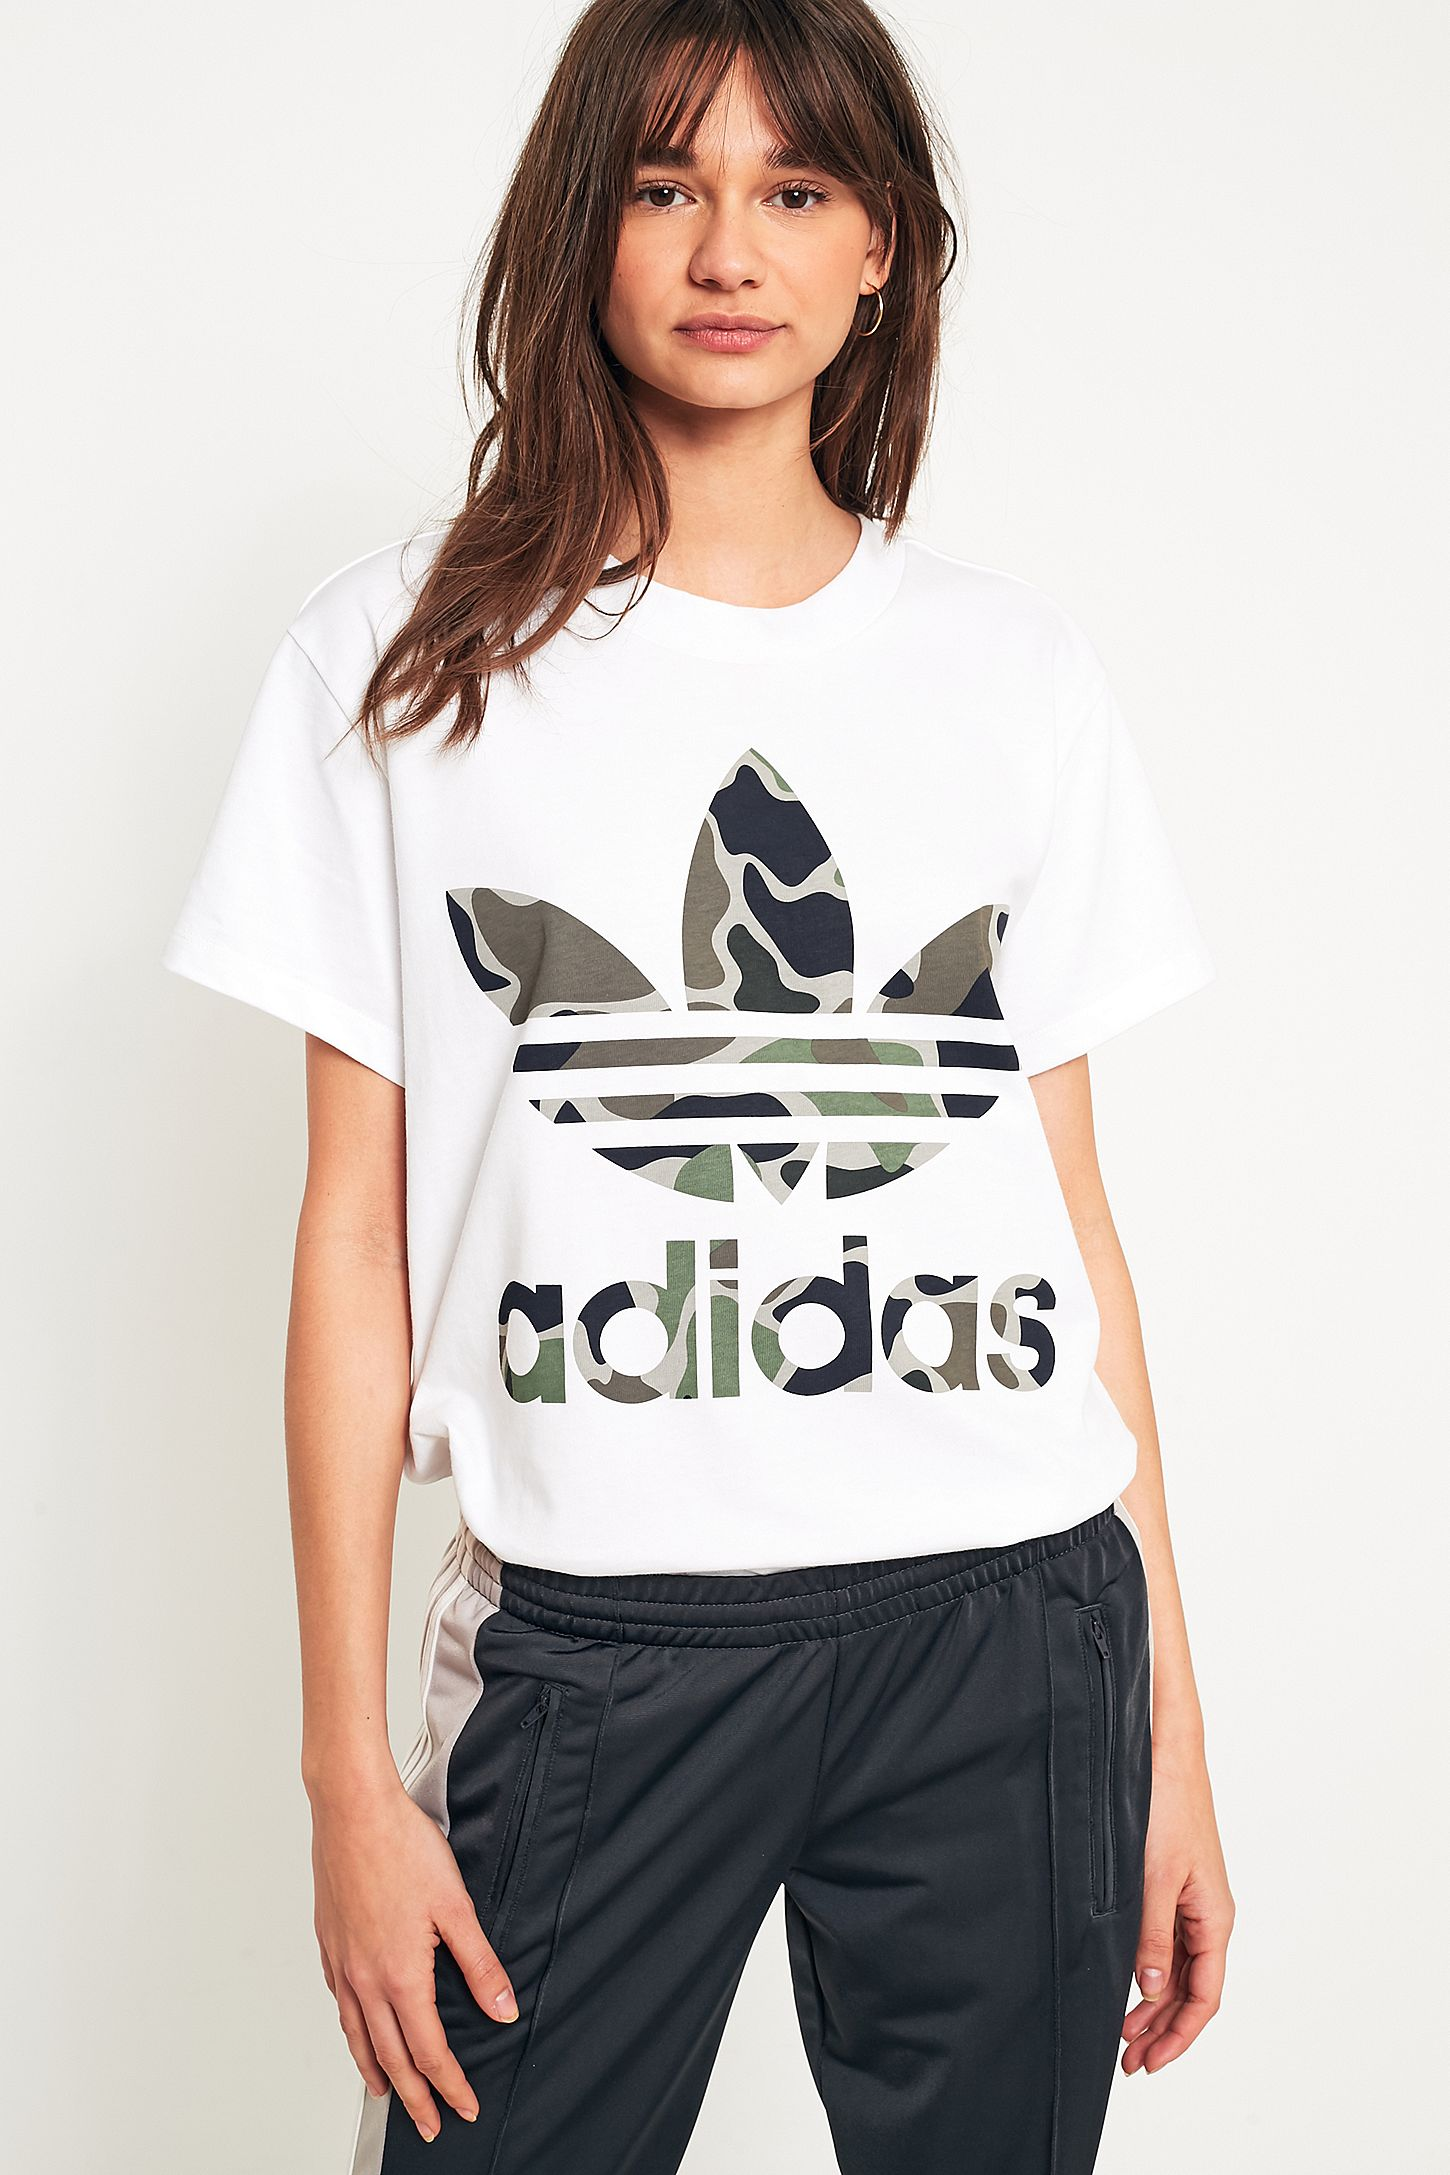 a370aaa6 adidas Originals Camo Big Trefoil T-Shirt | Urban Outfitters UK